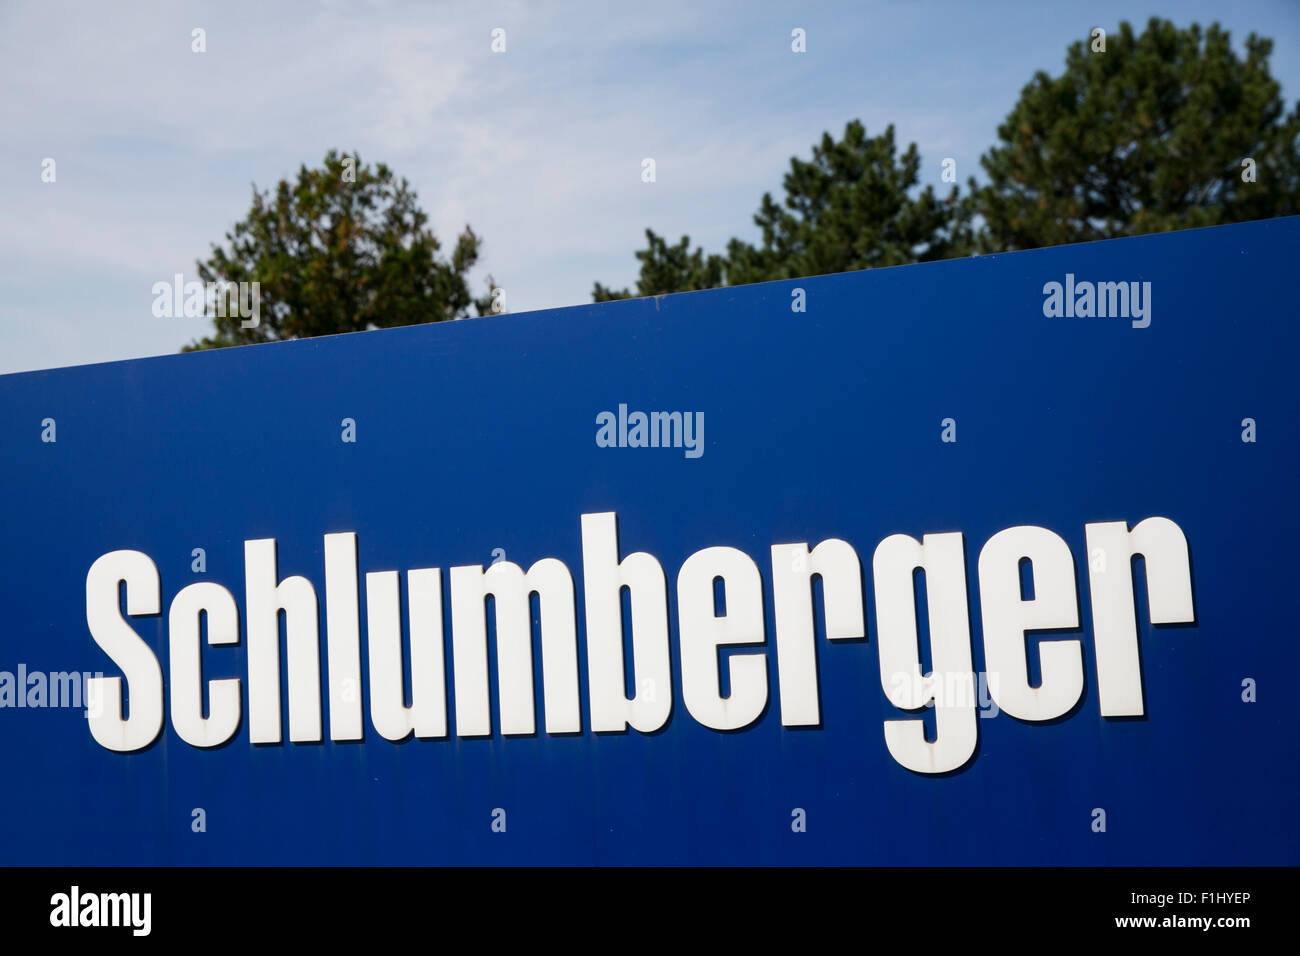 A logo sign outside of a facility operated by Schlumberger